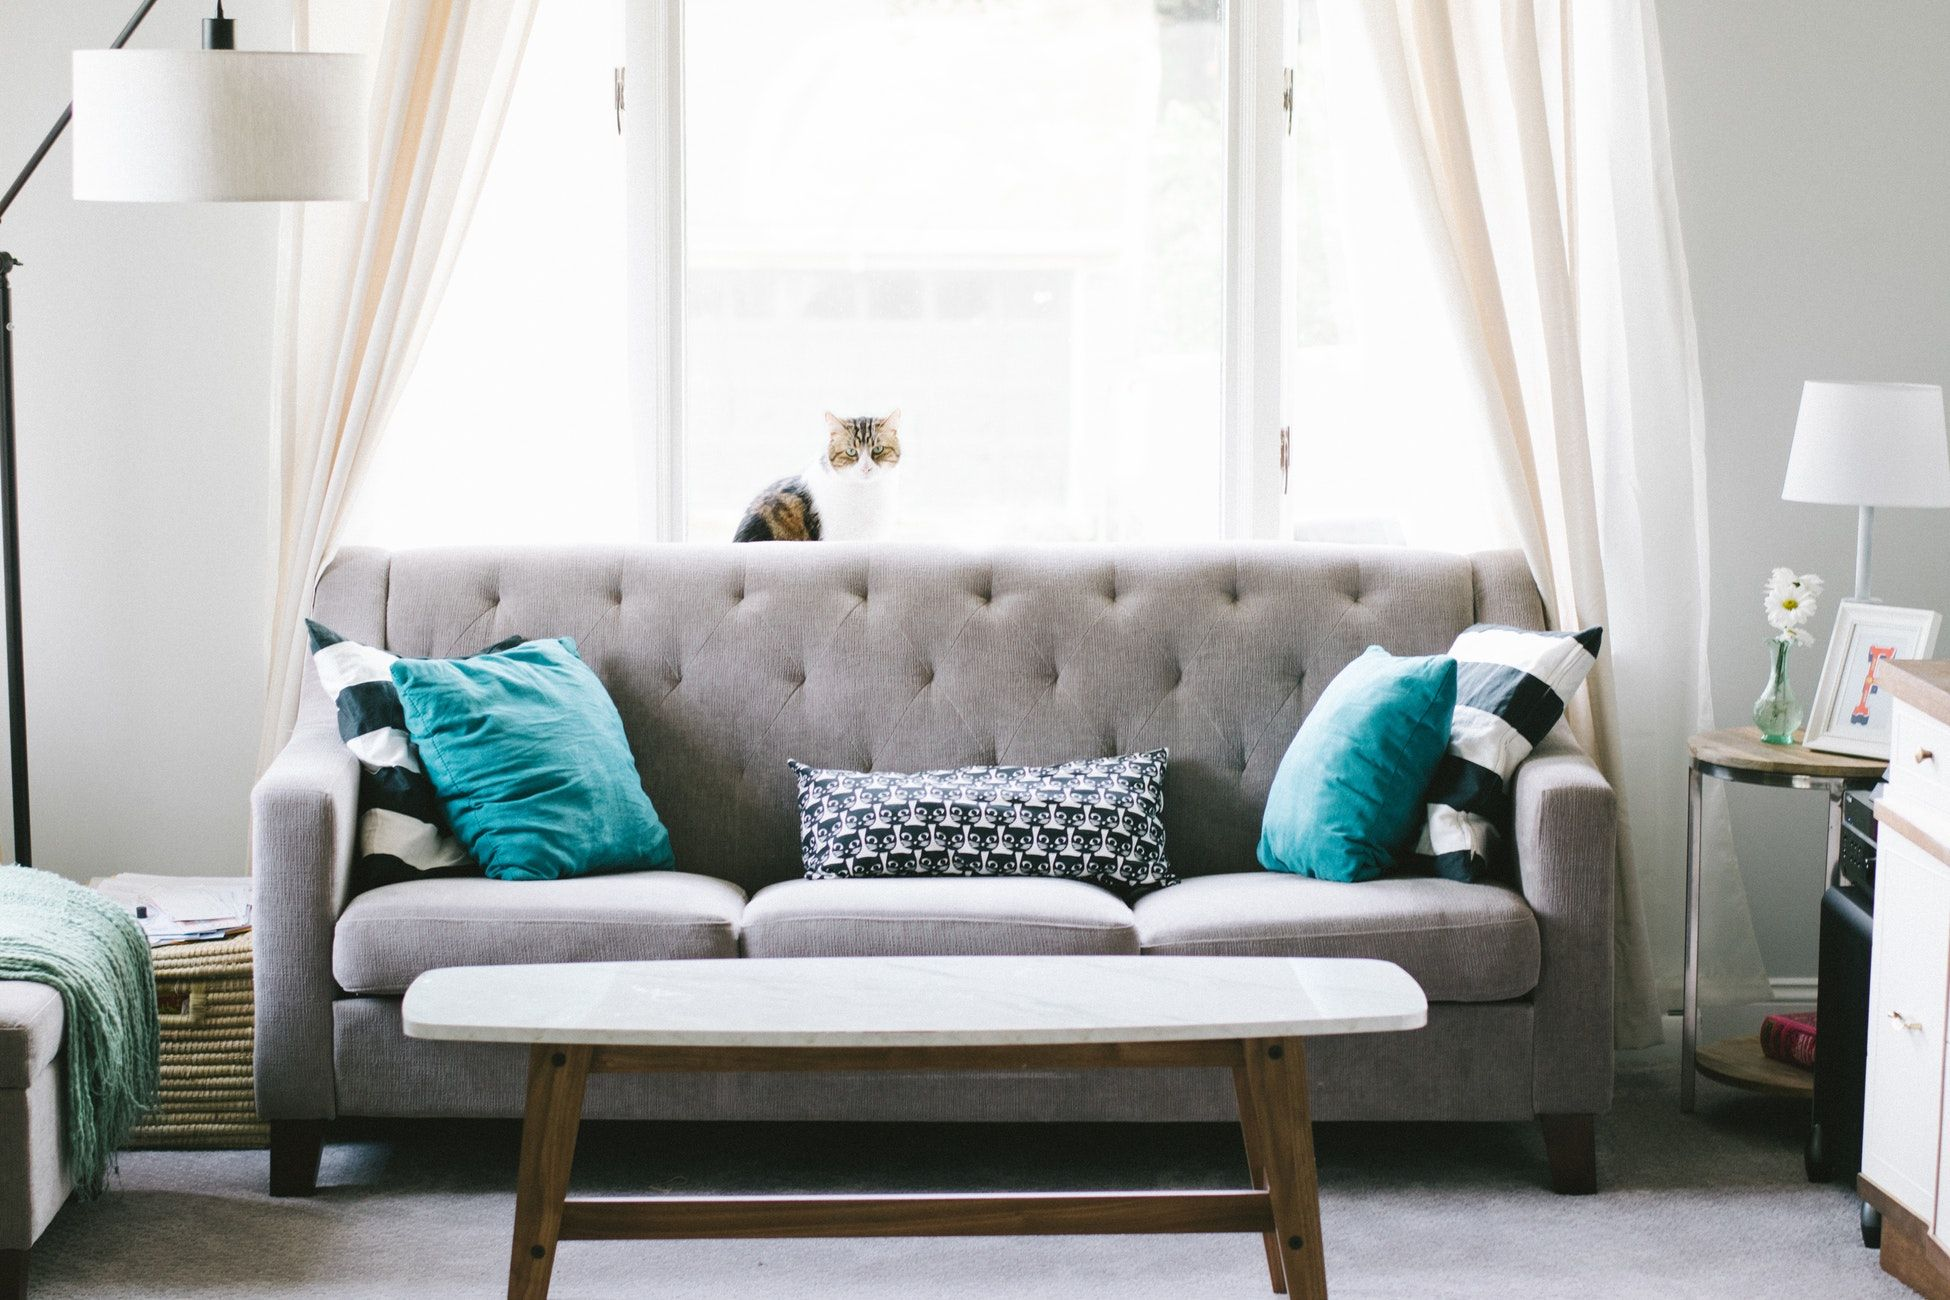 5 Ways To Organise Your Home For A Decluttered 2018